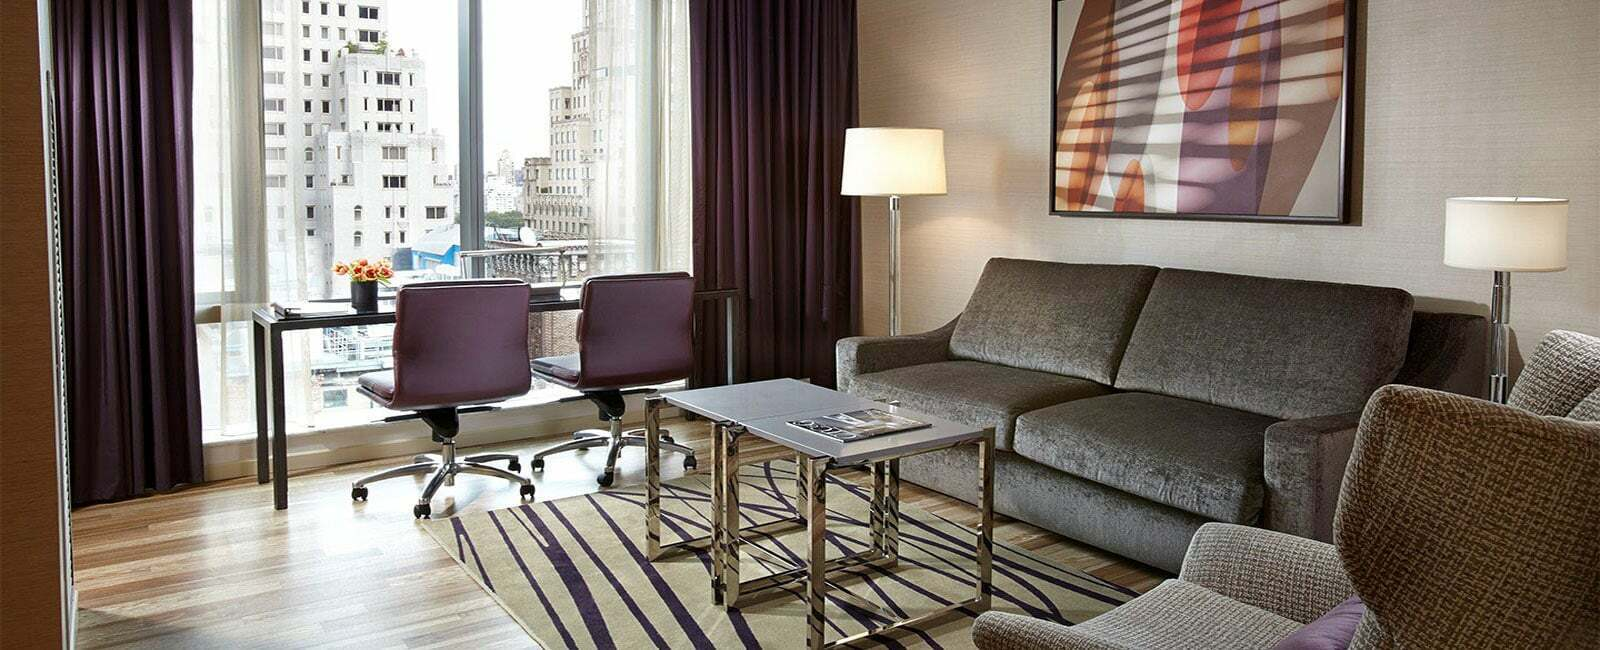 5,250 Points At West 57th Street By Hilton Grand Vacations Timeshare New York - $1,526.99